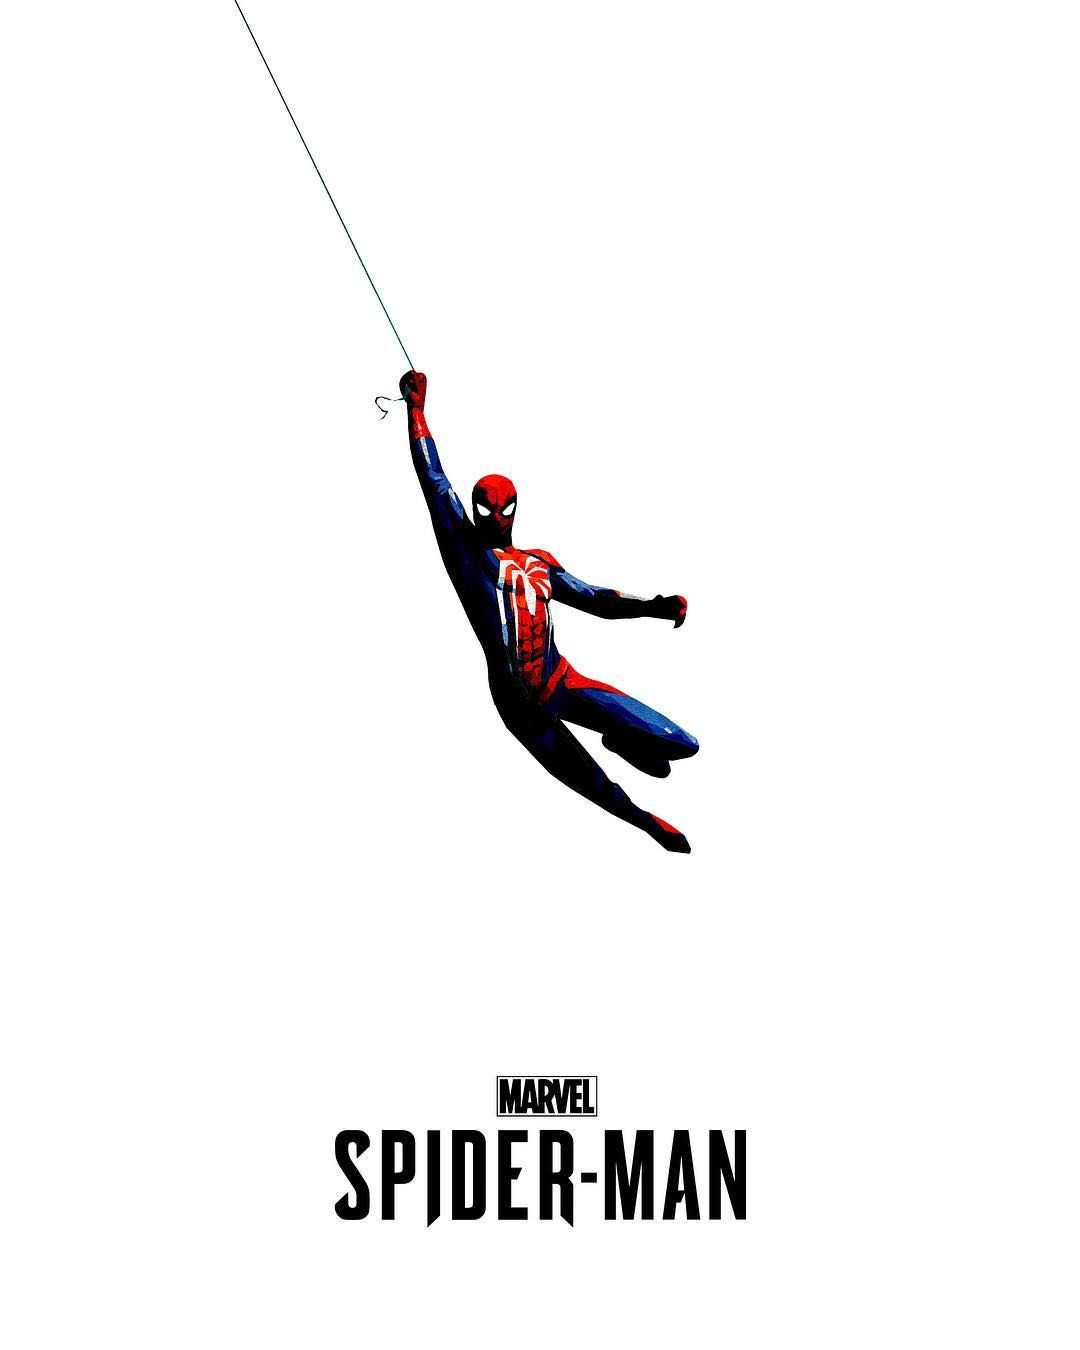 inimal poster for the upcoming Spider-Man game by